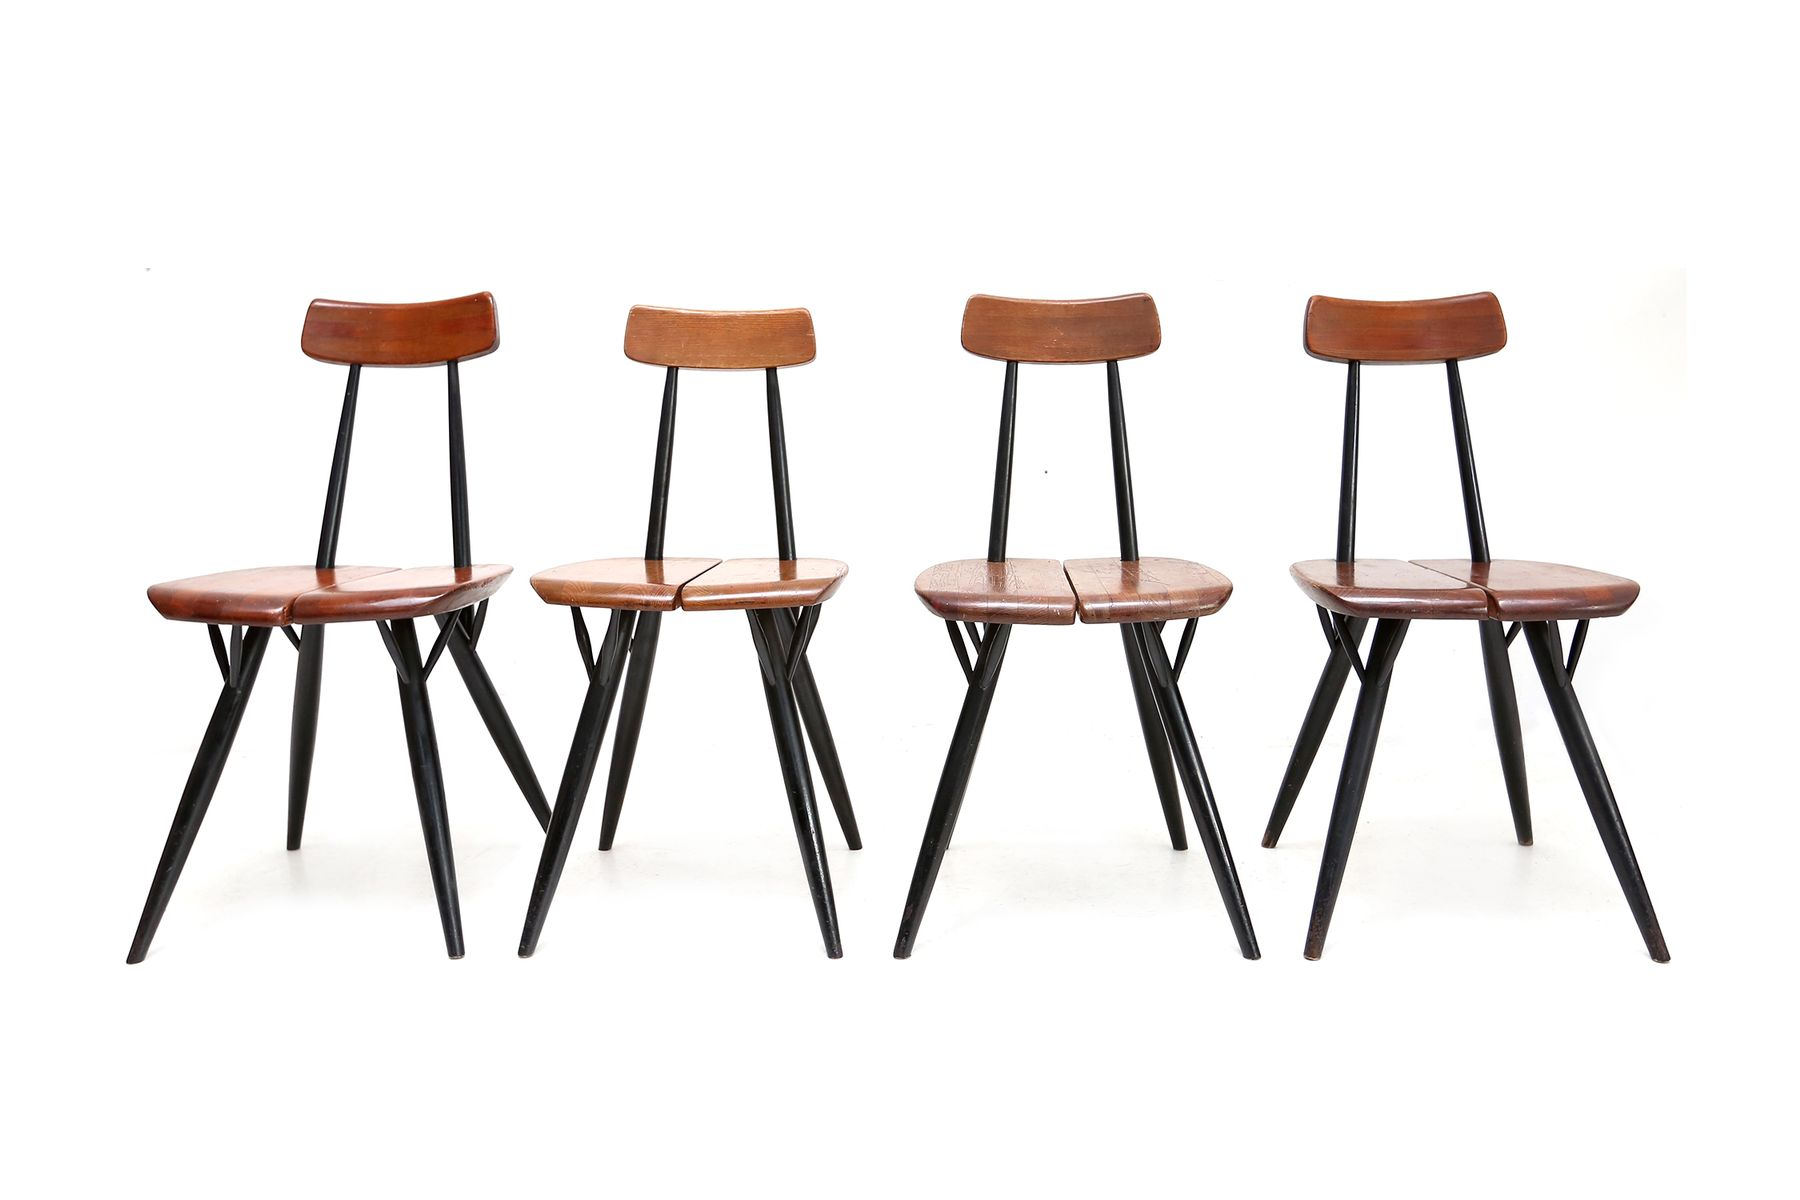 pirkka chairs by ilmari tapiovaara set of 4 for sale at pamono. Black Bedroom Furniture Sets. Home Design Ideas